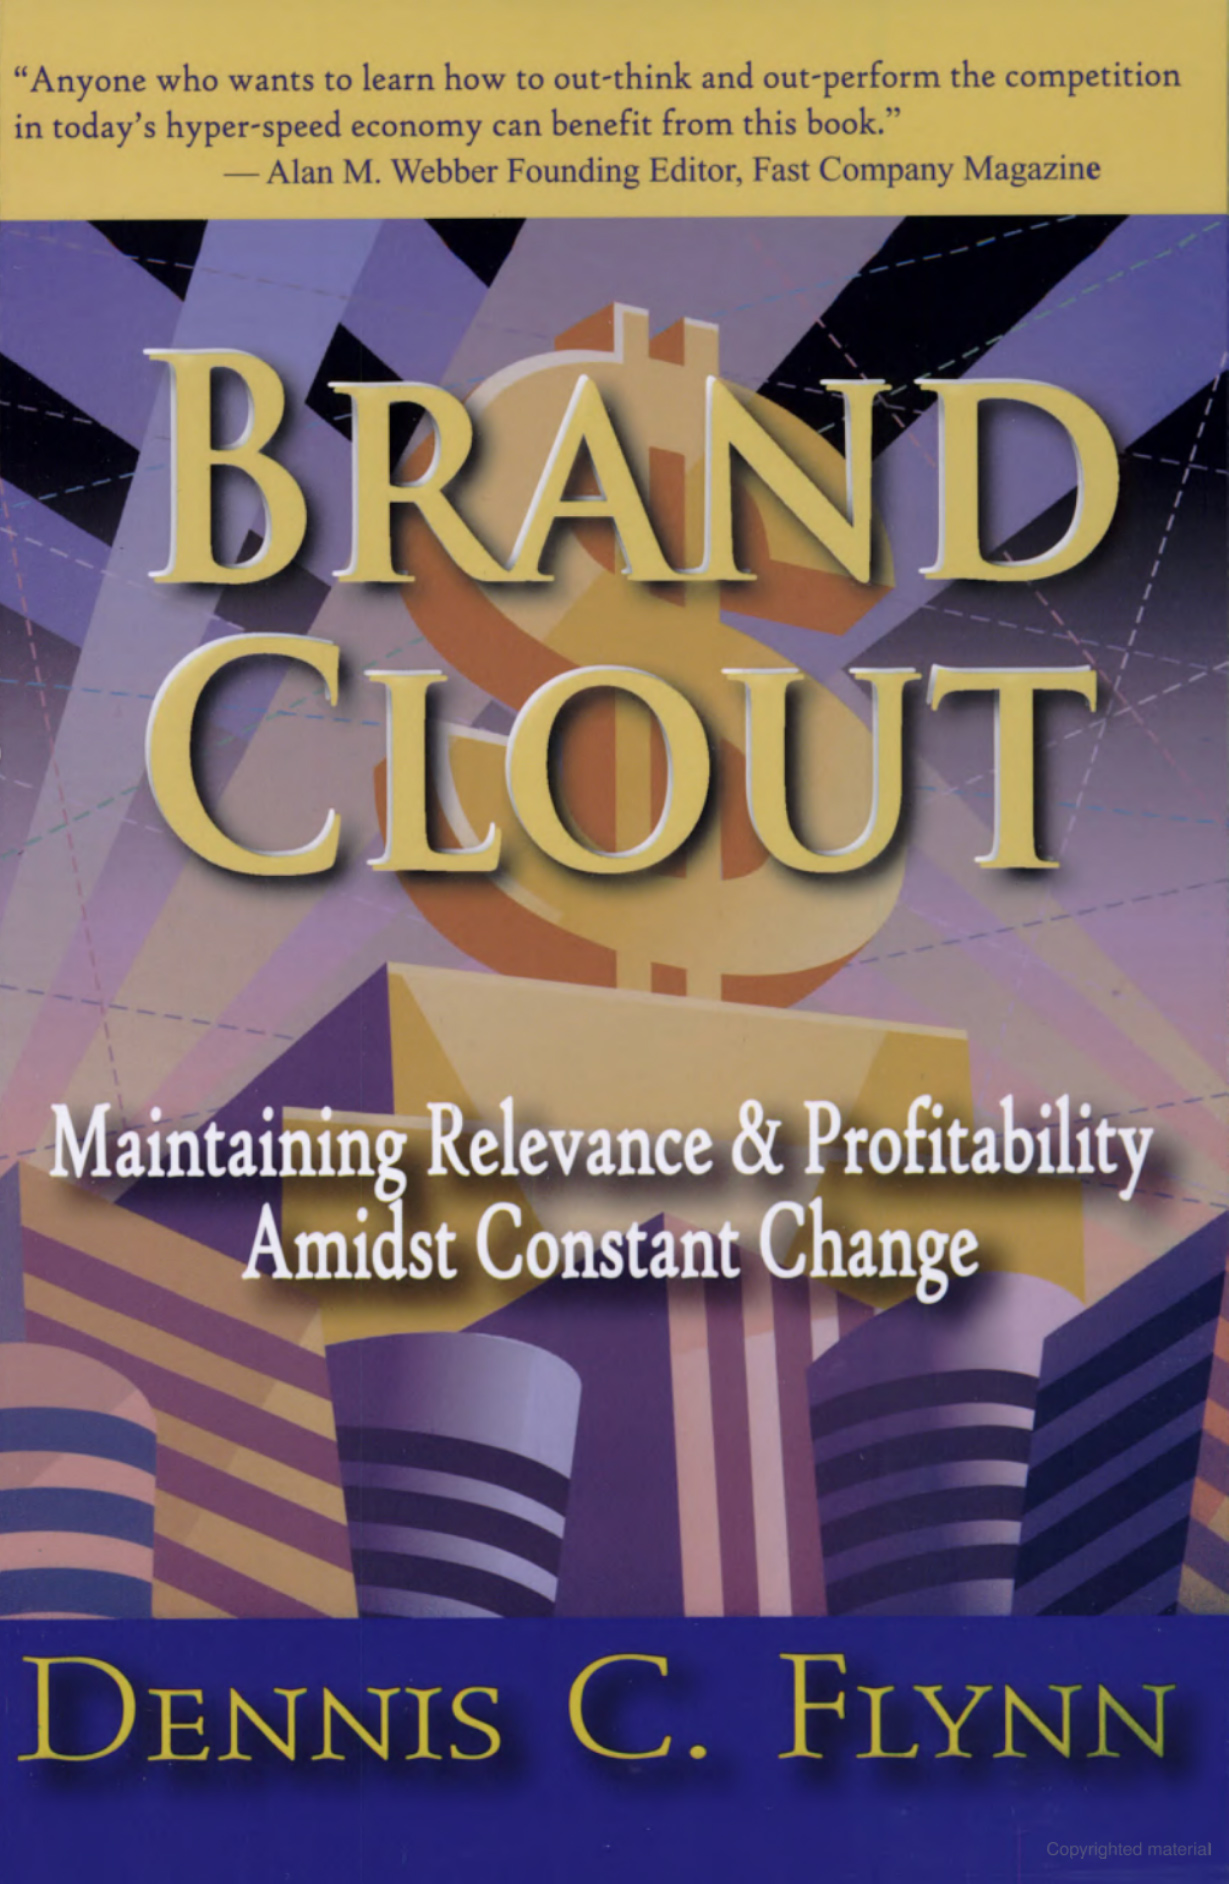 Brand Clout - Maintaining Relevance & Profitability Amidst Constant Change